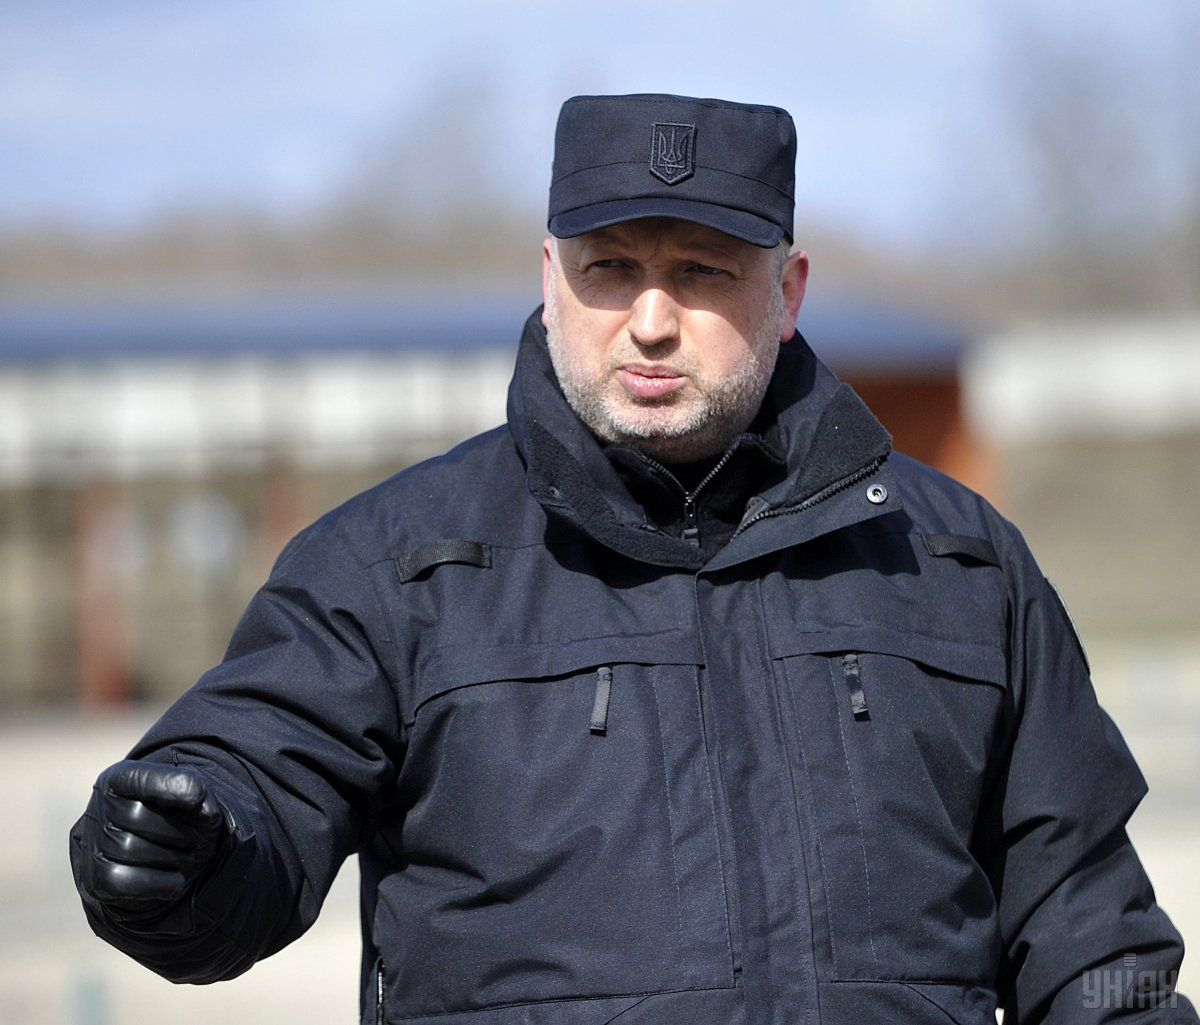 Law enforcers should be ready for any provocations, said Turchynov / Photo from UNIAN